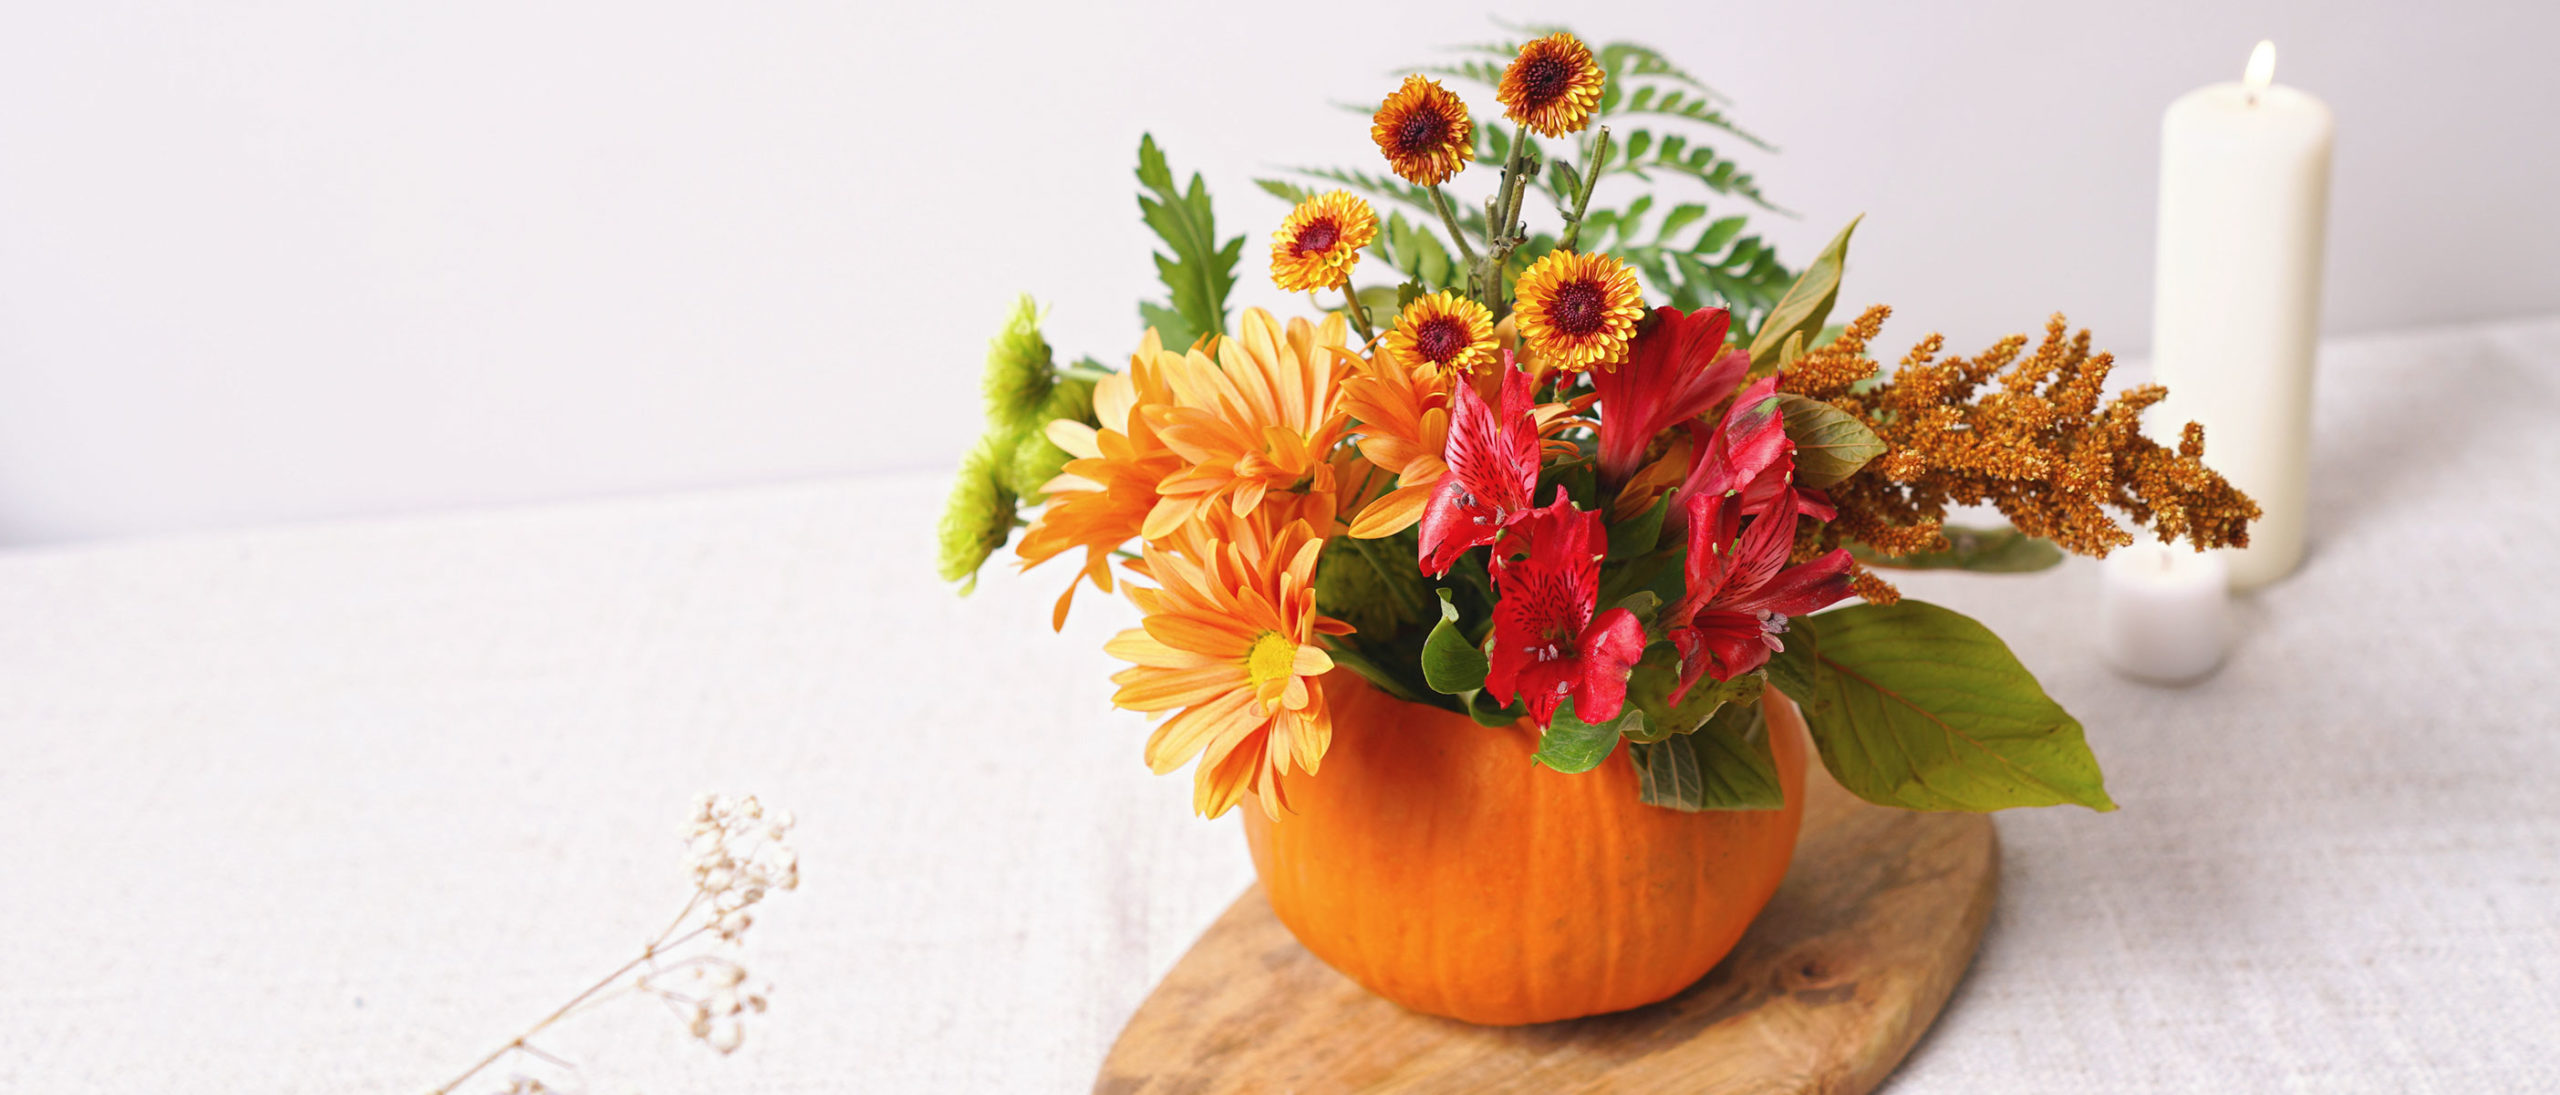 Header image of pumpkin vase with fall flowers